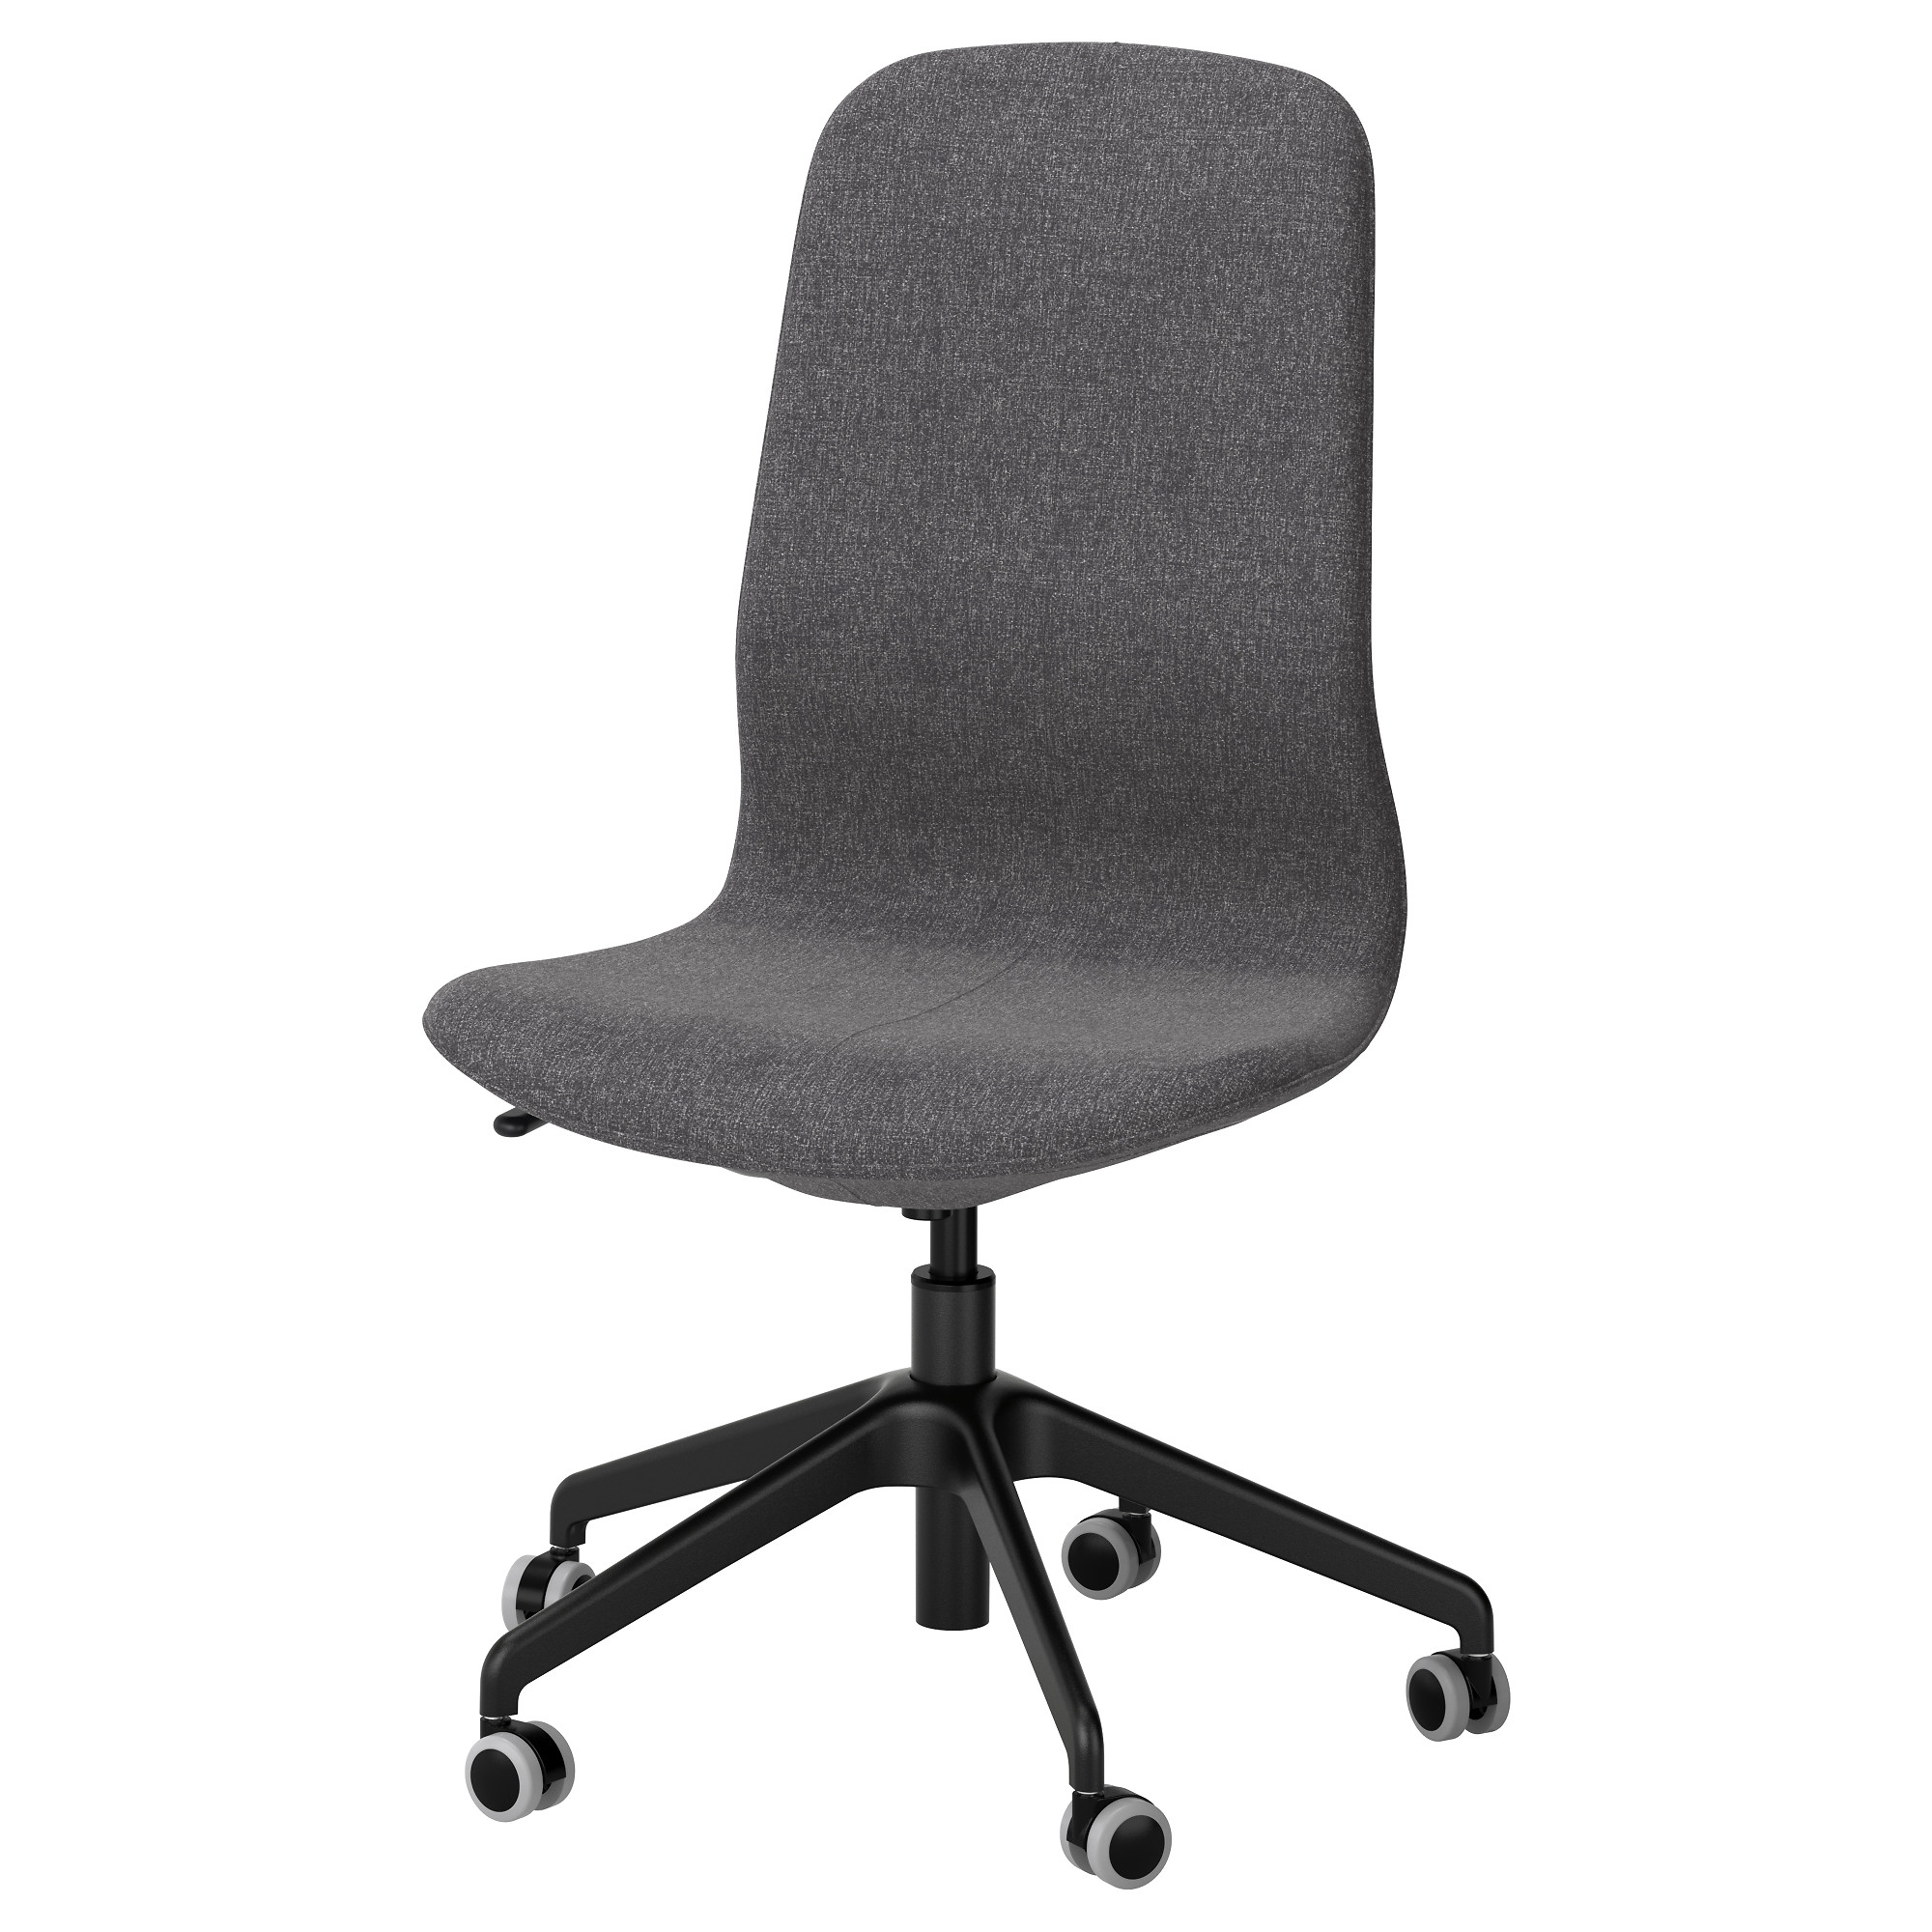 Swivel Chairs IKEA